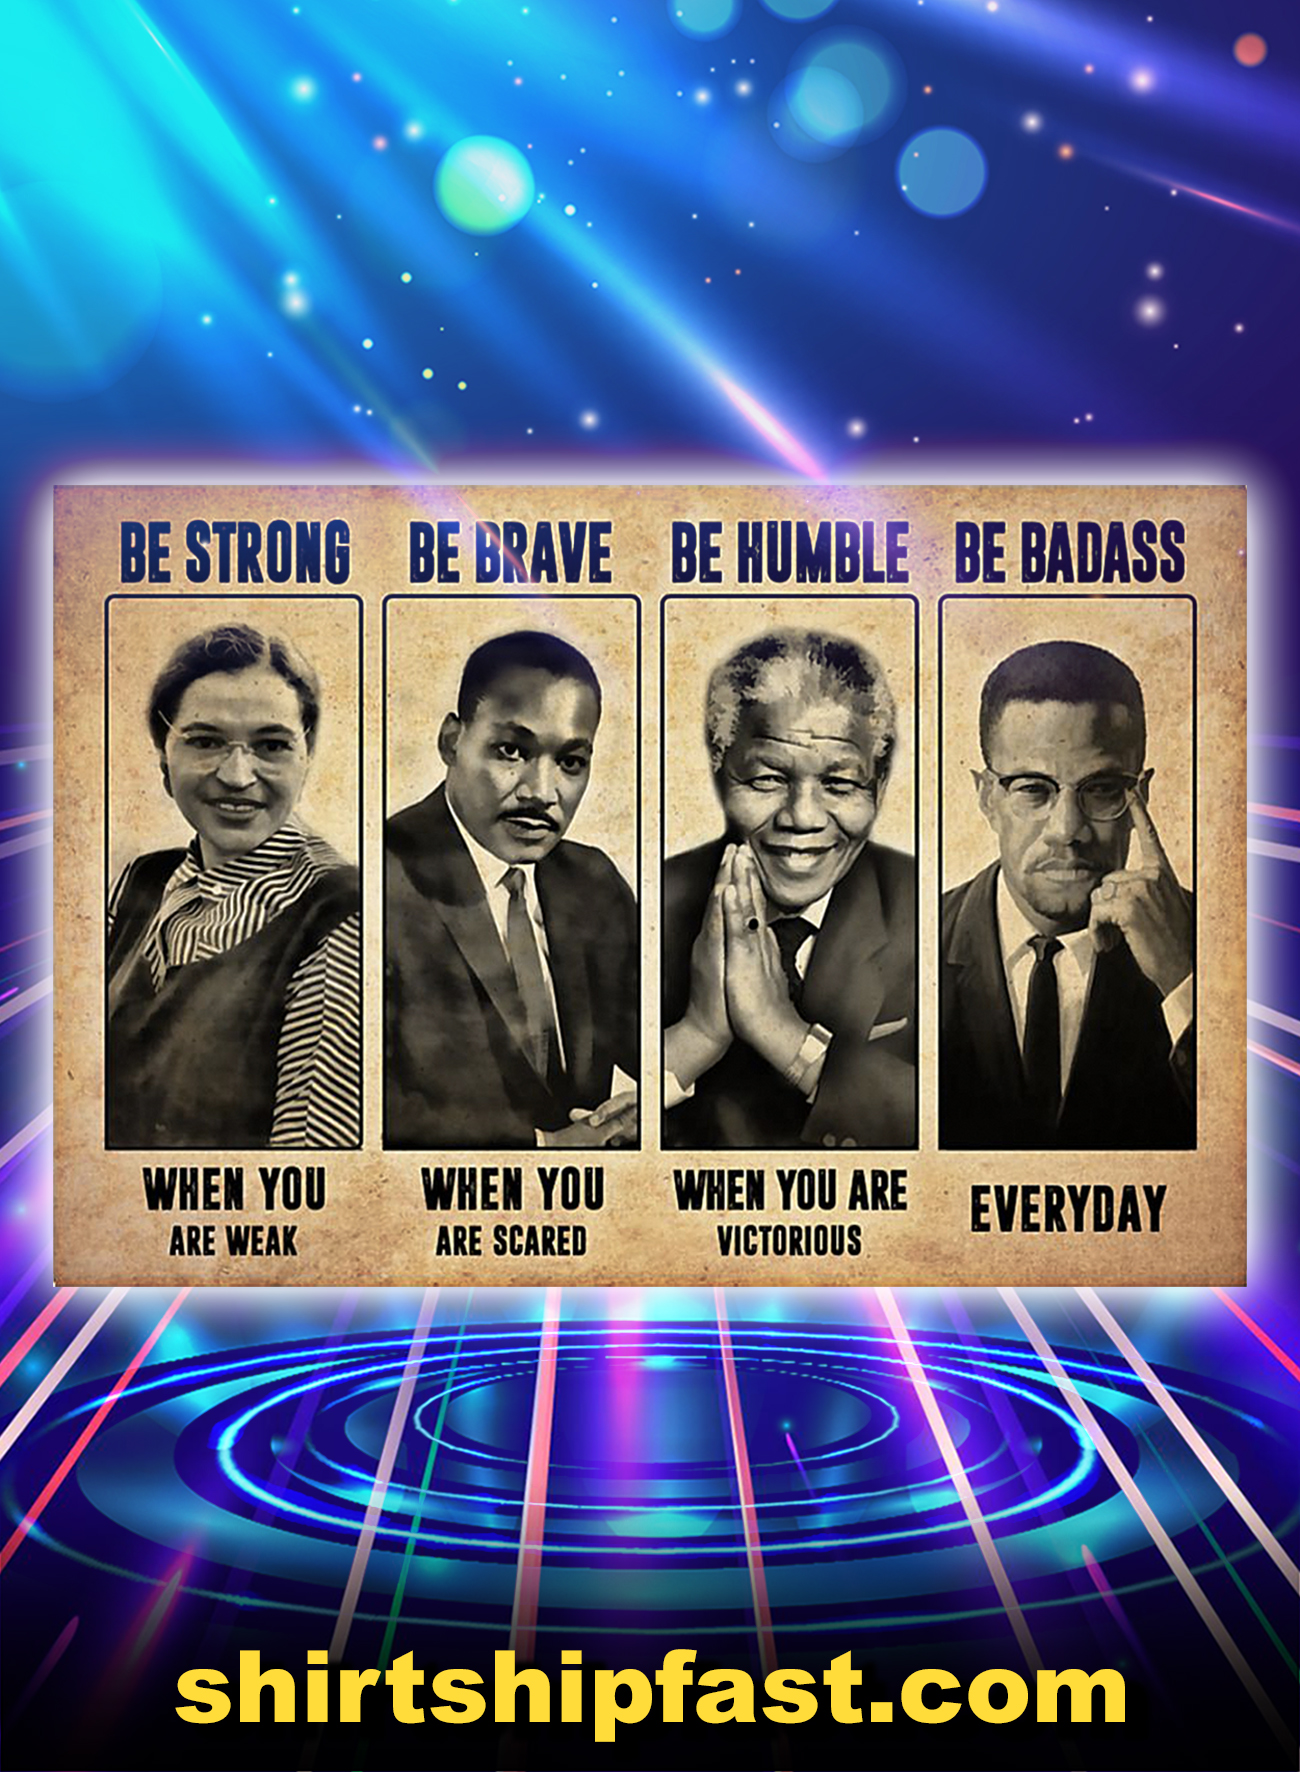 Rosa Parks Martin Luther King Malcolm Nelson Mandela famous people be strong poster - A1